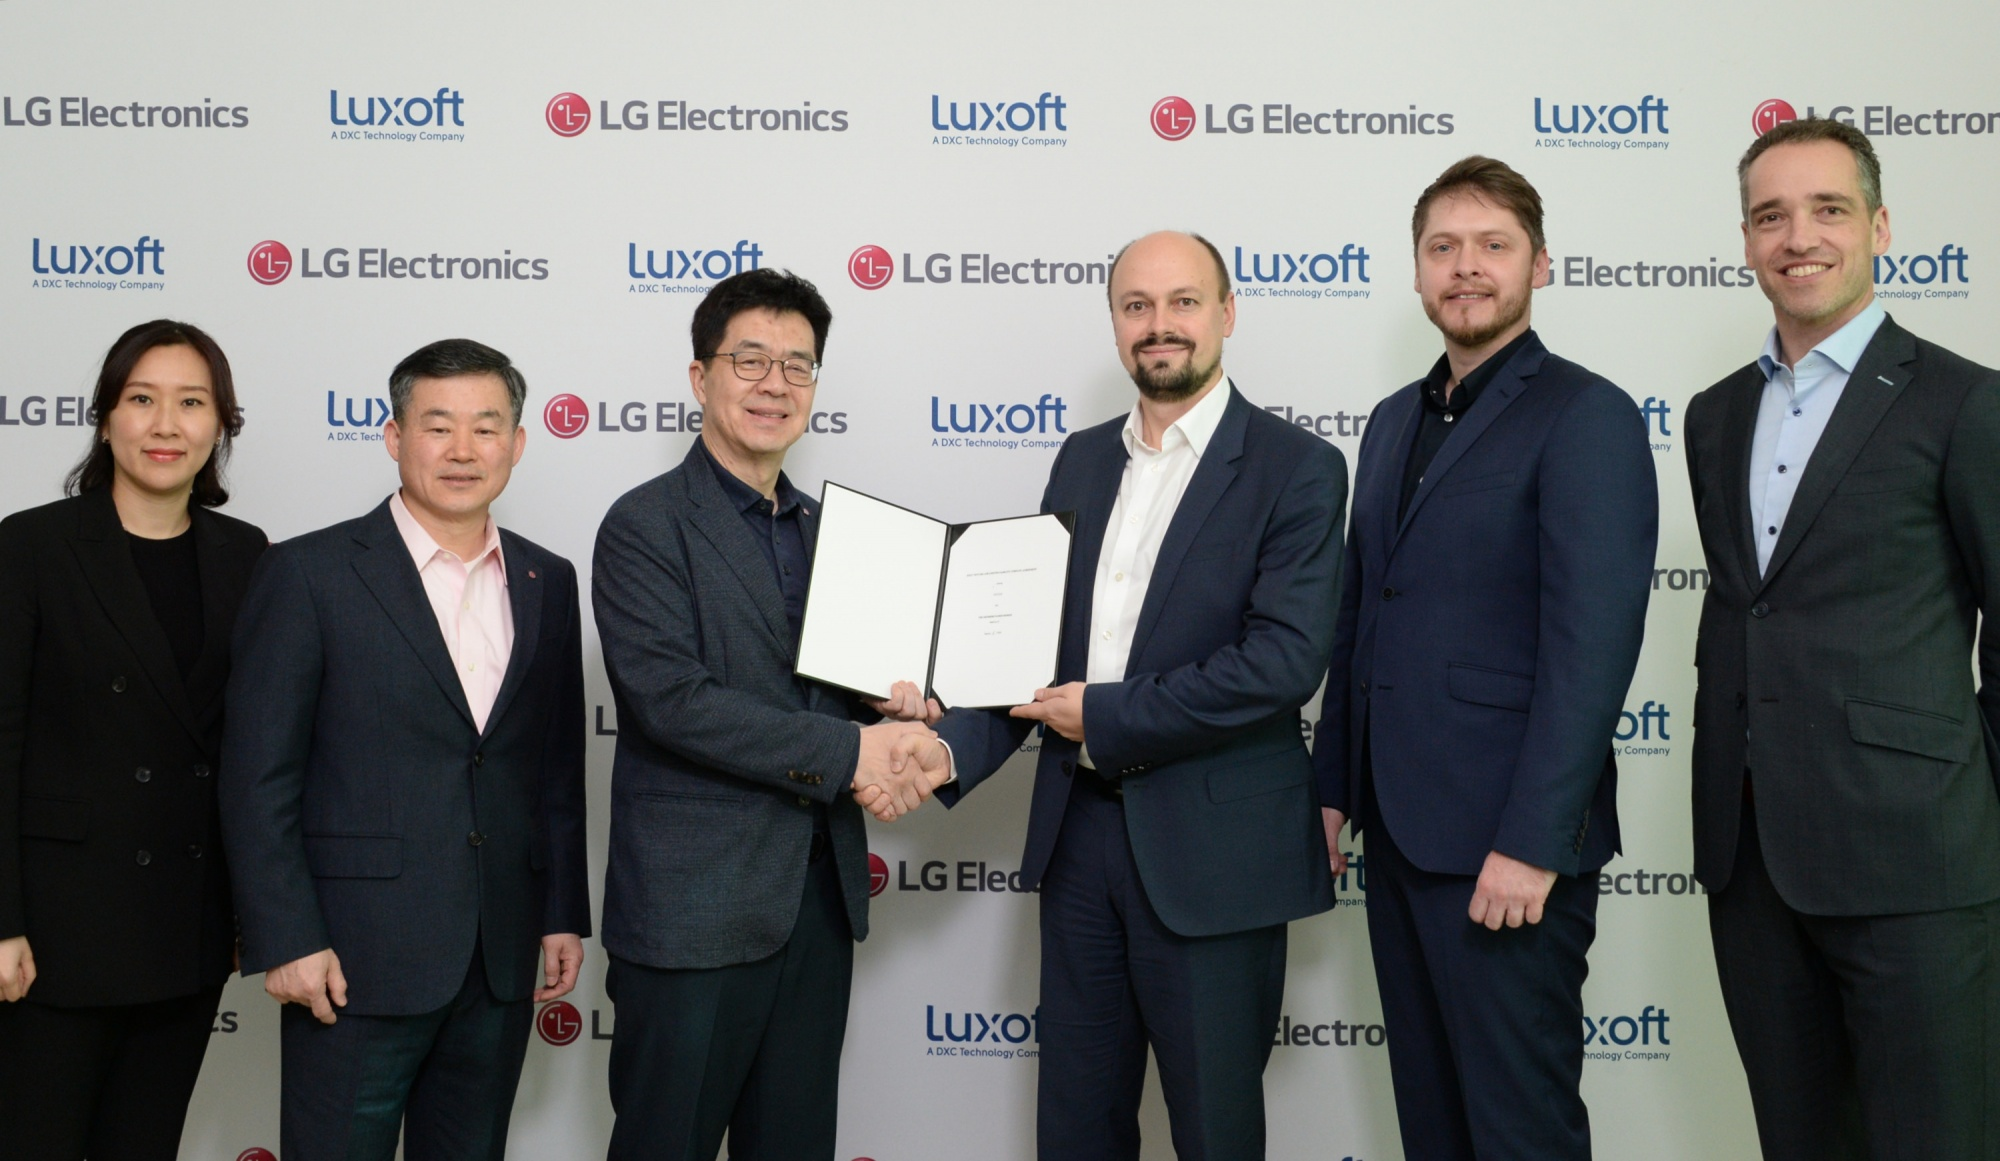 LG Electronics and Luxoft Joint Venture Agreement Signing Ceremony, January 7, 2020